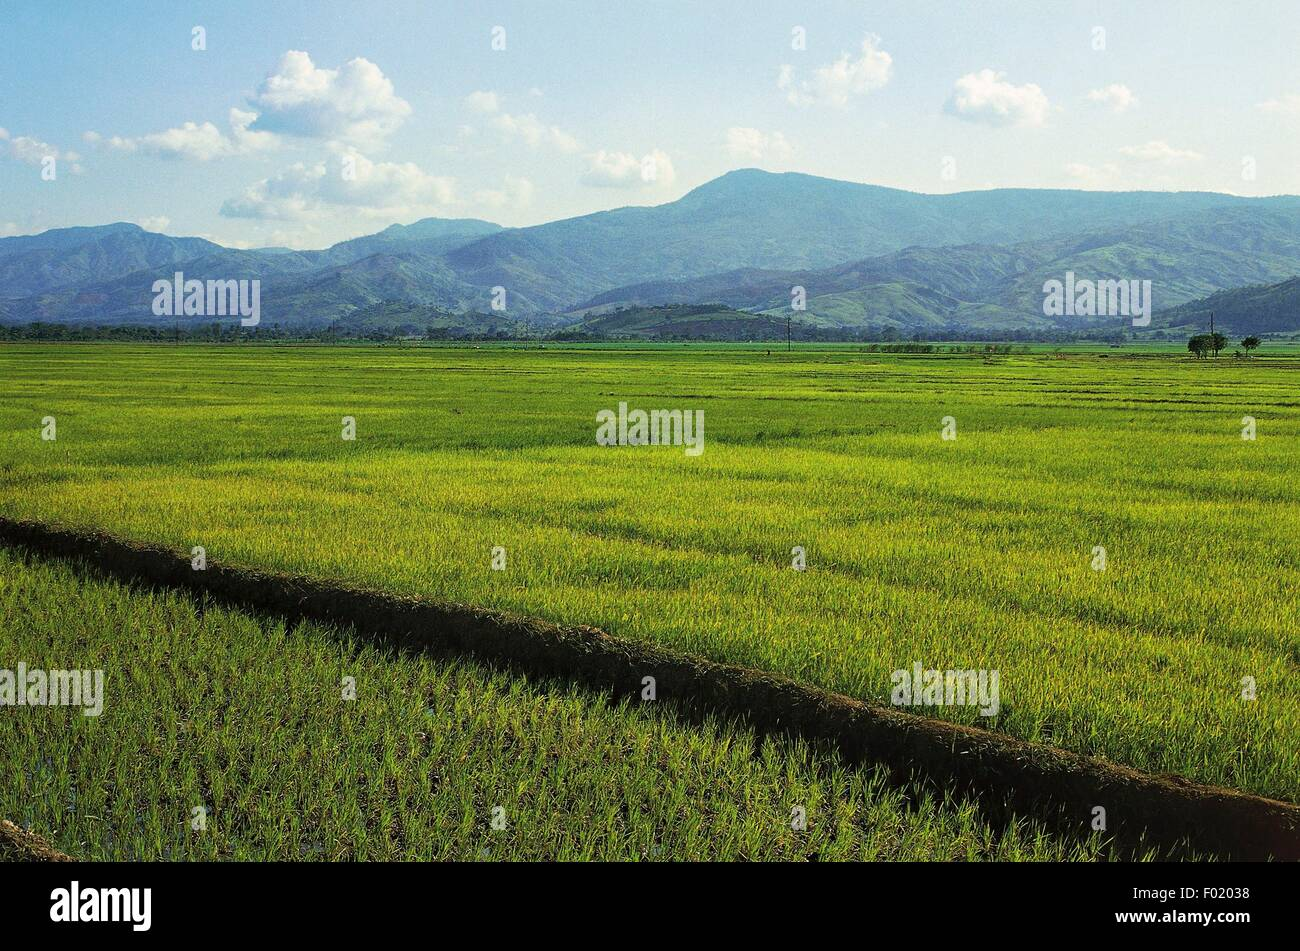 La Vega Real Valley, where the first battle between Europeans and natives occurred, Dominican Republic. - Stock Image